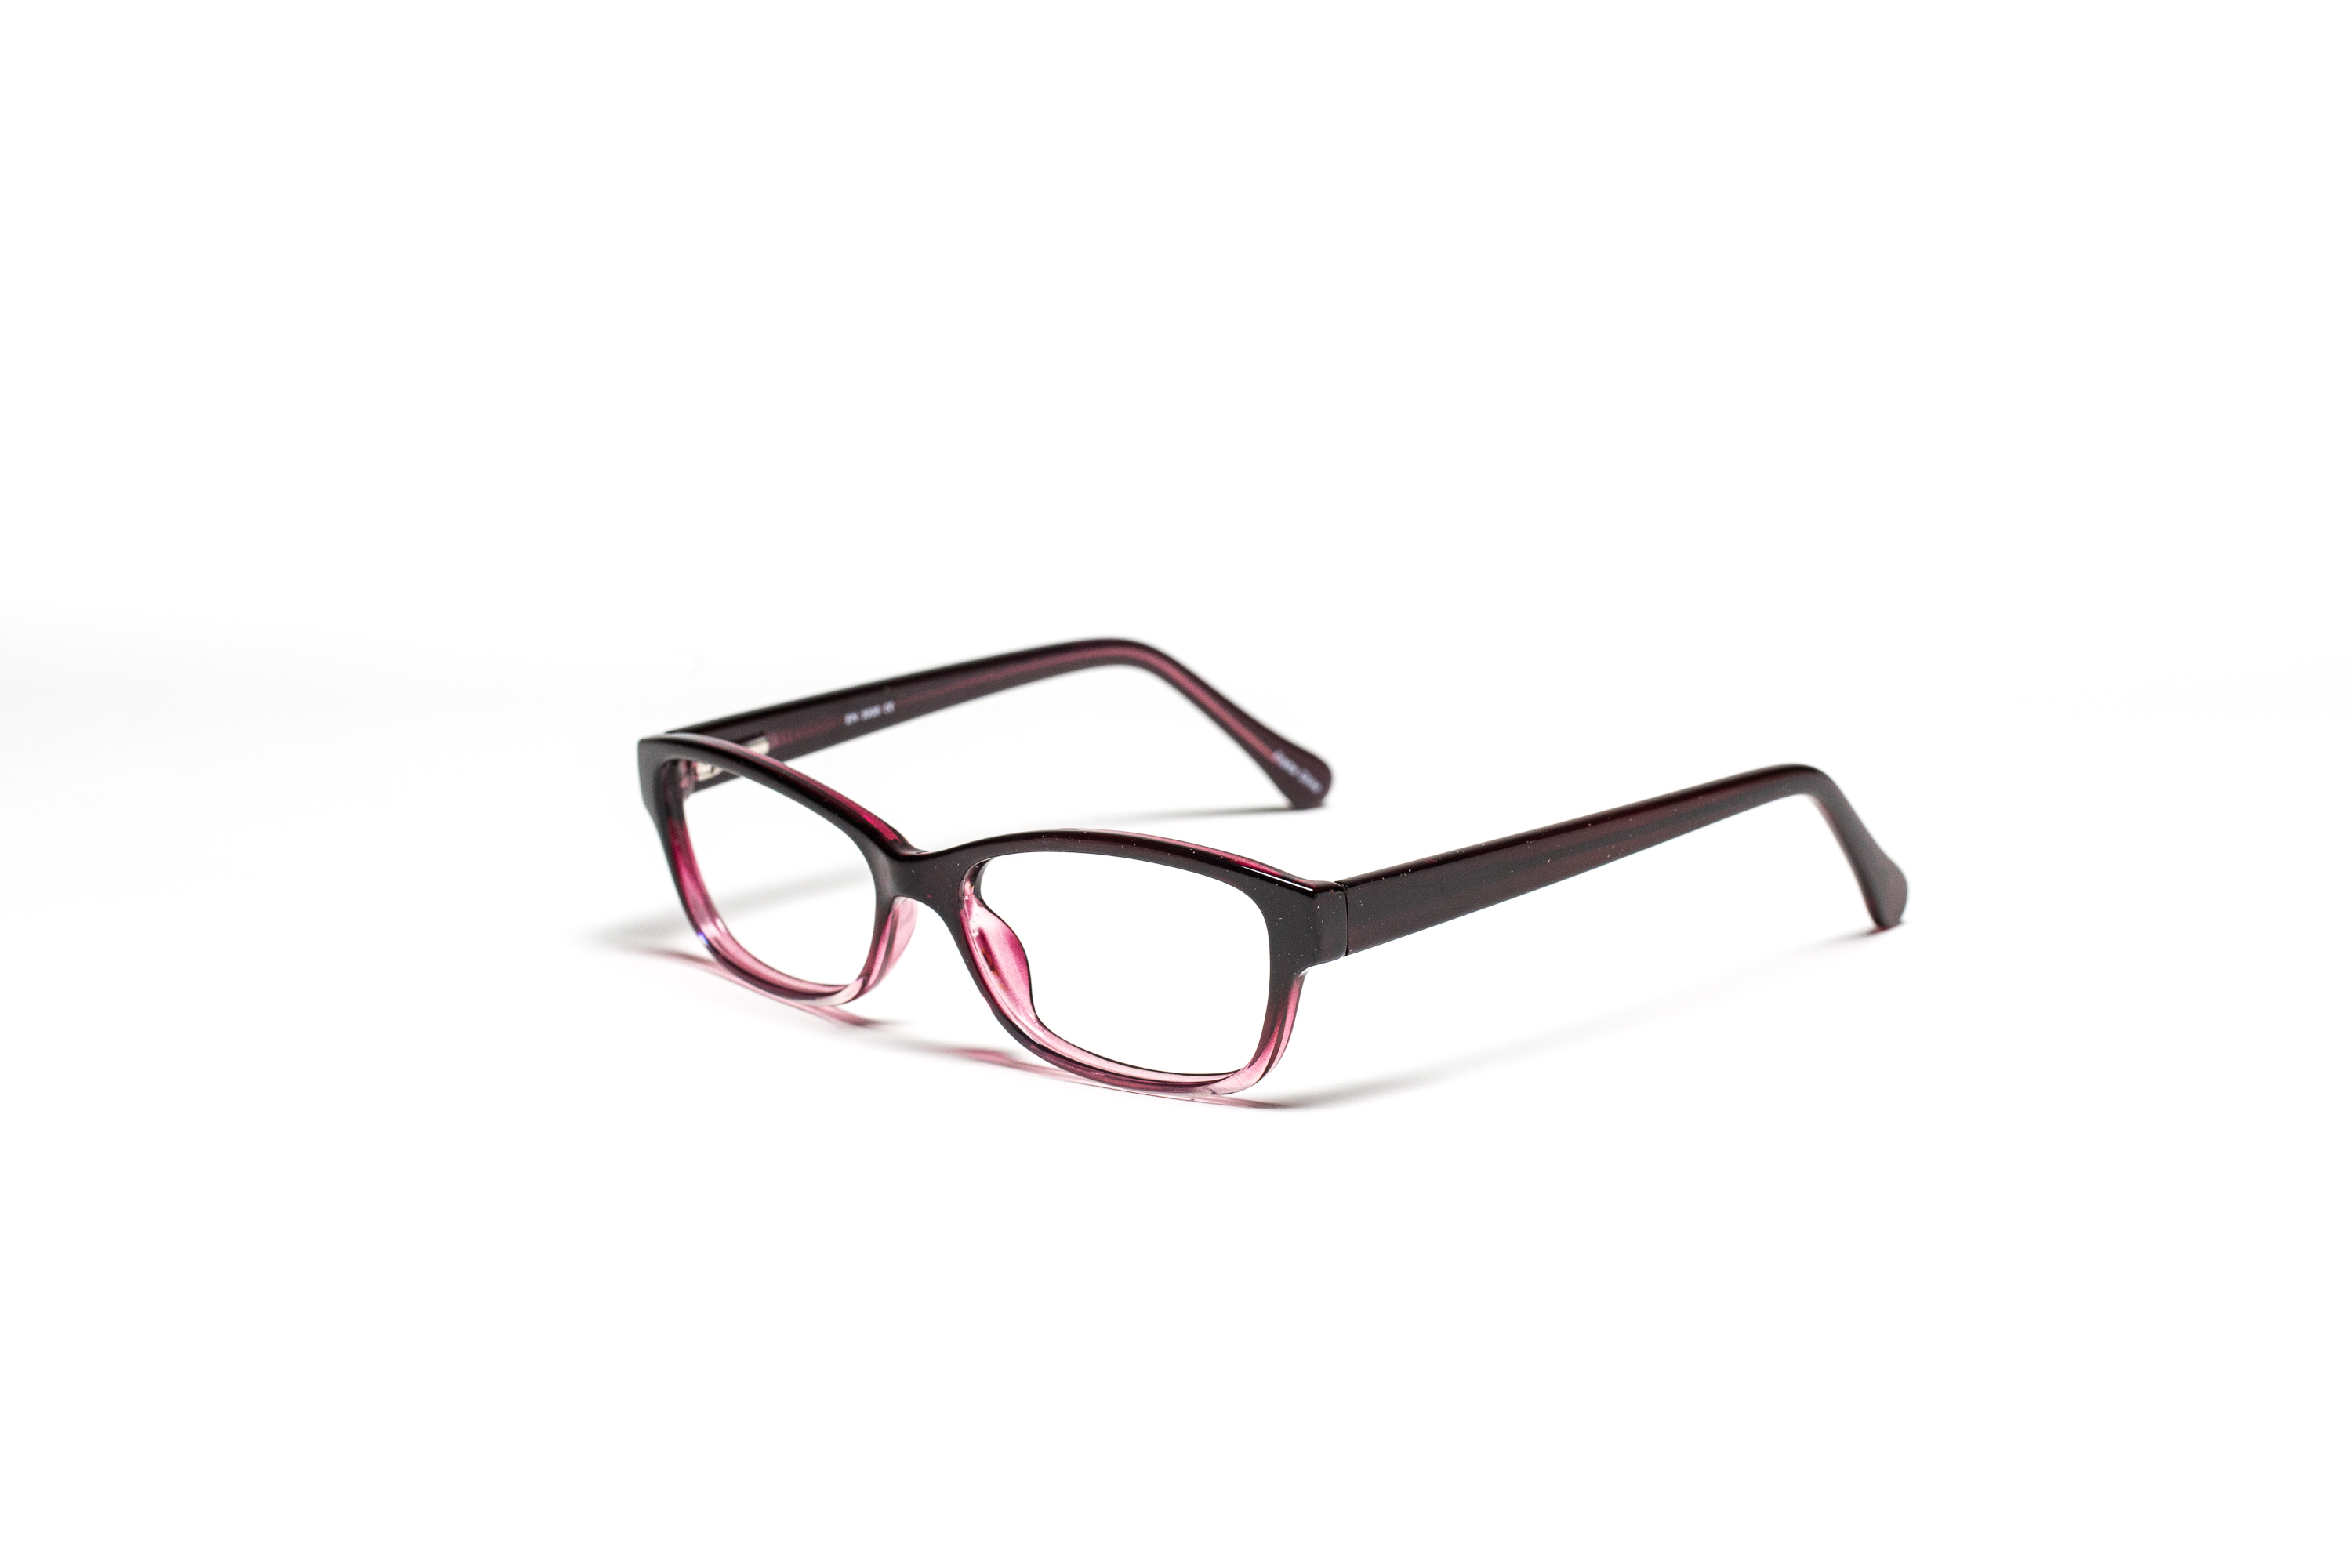 arizona en906 eyeglass frames jcpenney optical